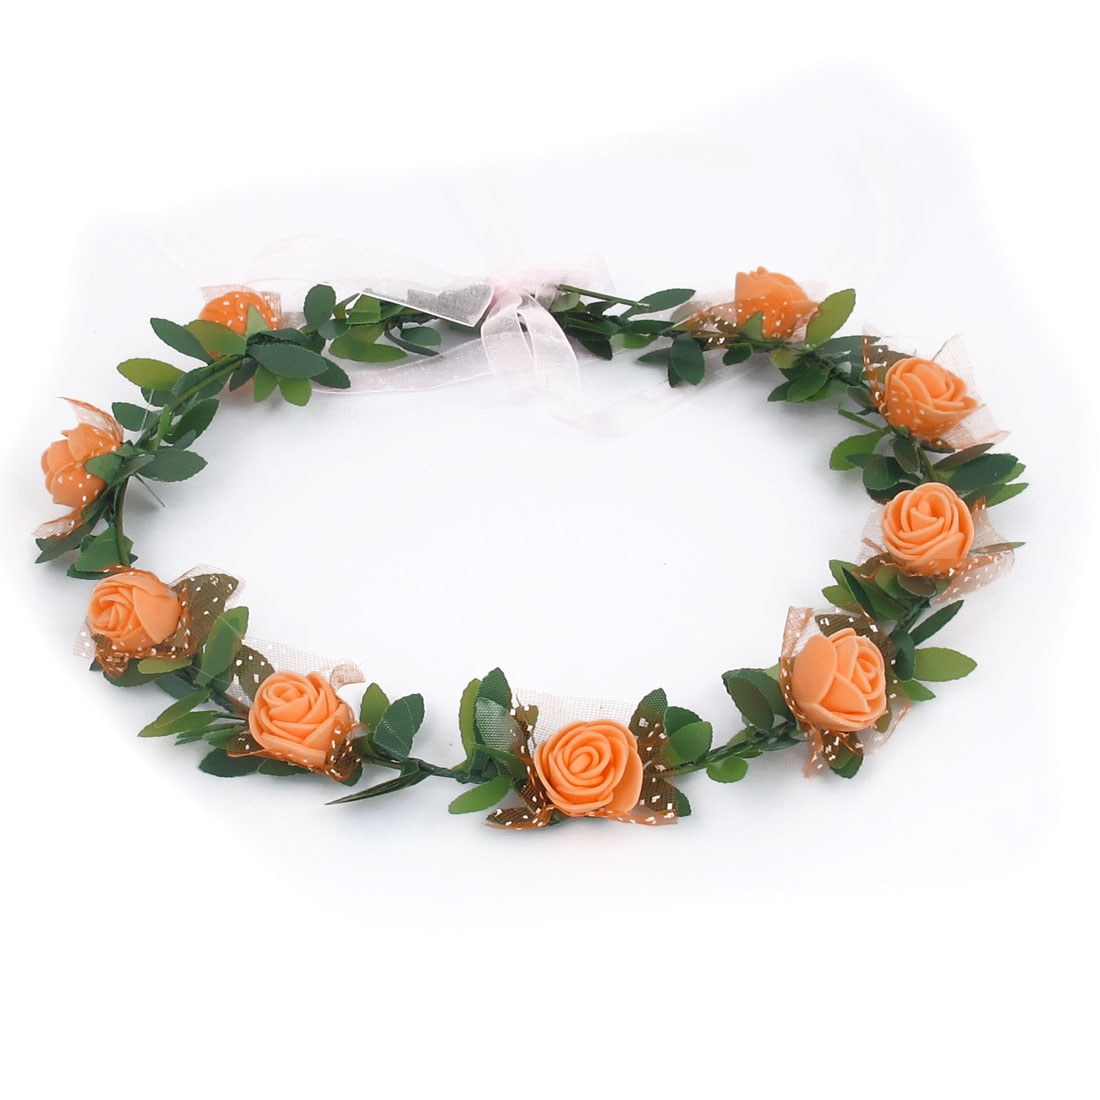 Lady Wedding Party Flower Decor Adjustable Headwear Headdress Hair Crown Wreath Orange